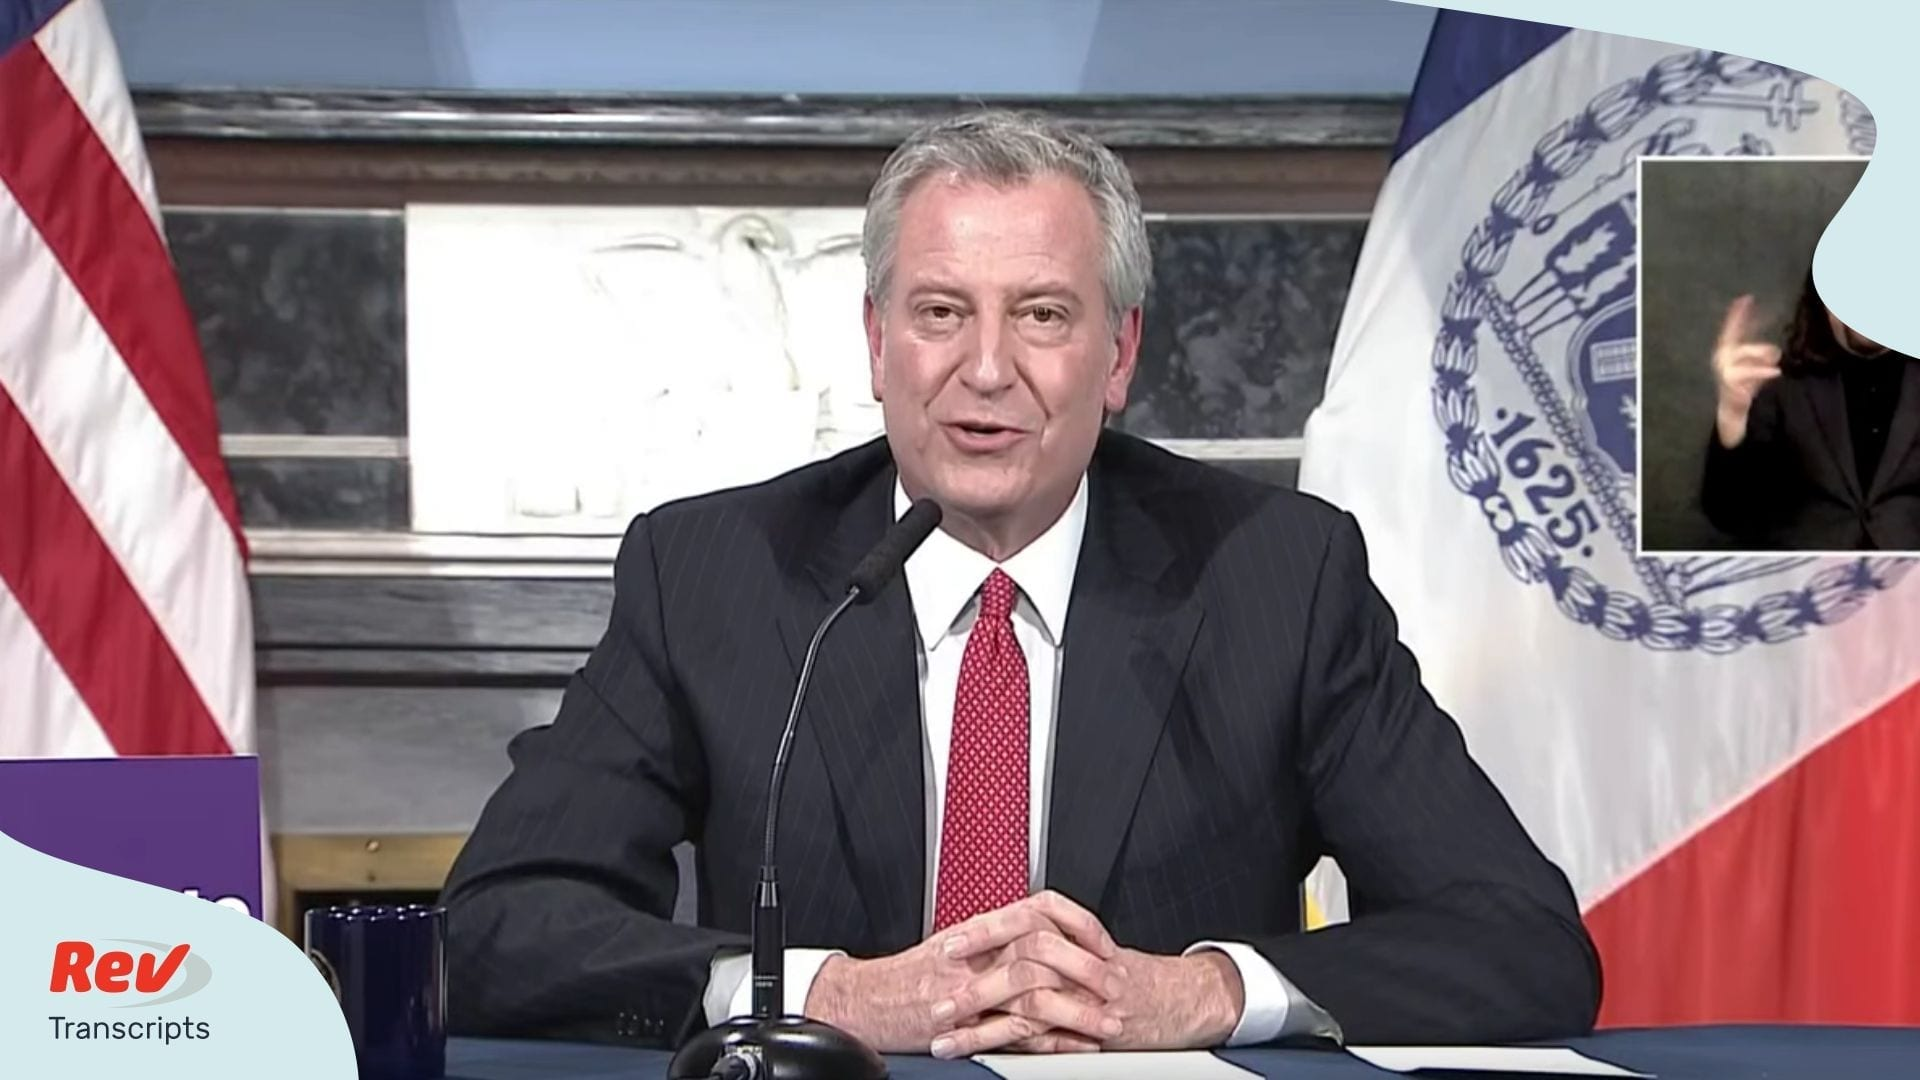 Bill de Blasio Press Conference April 2